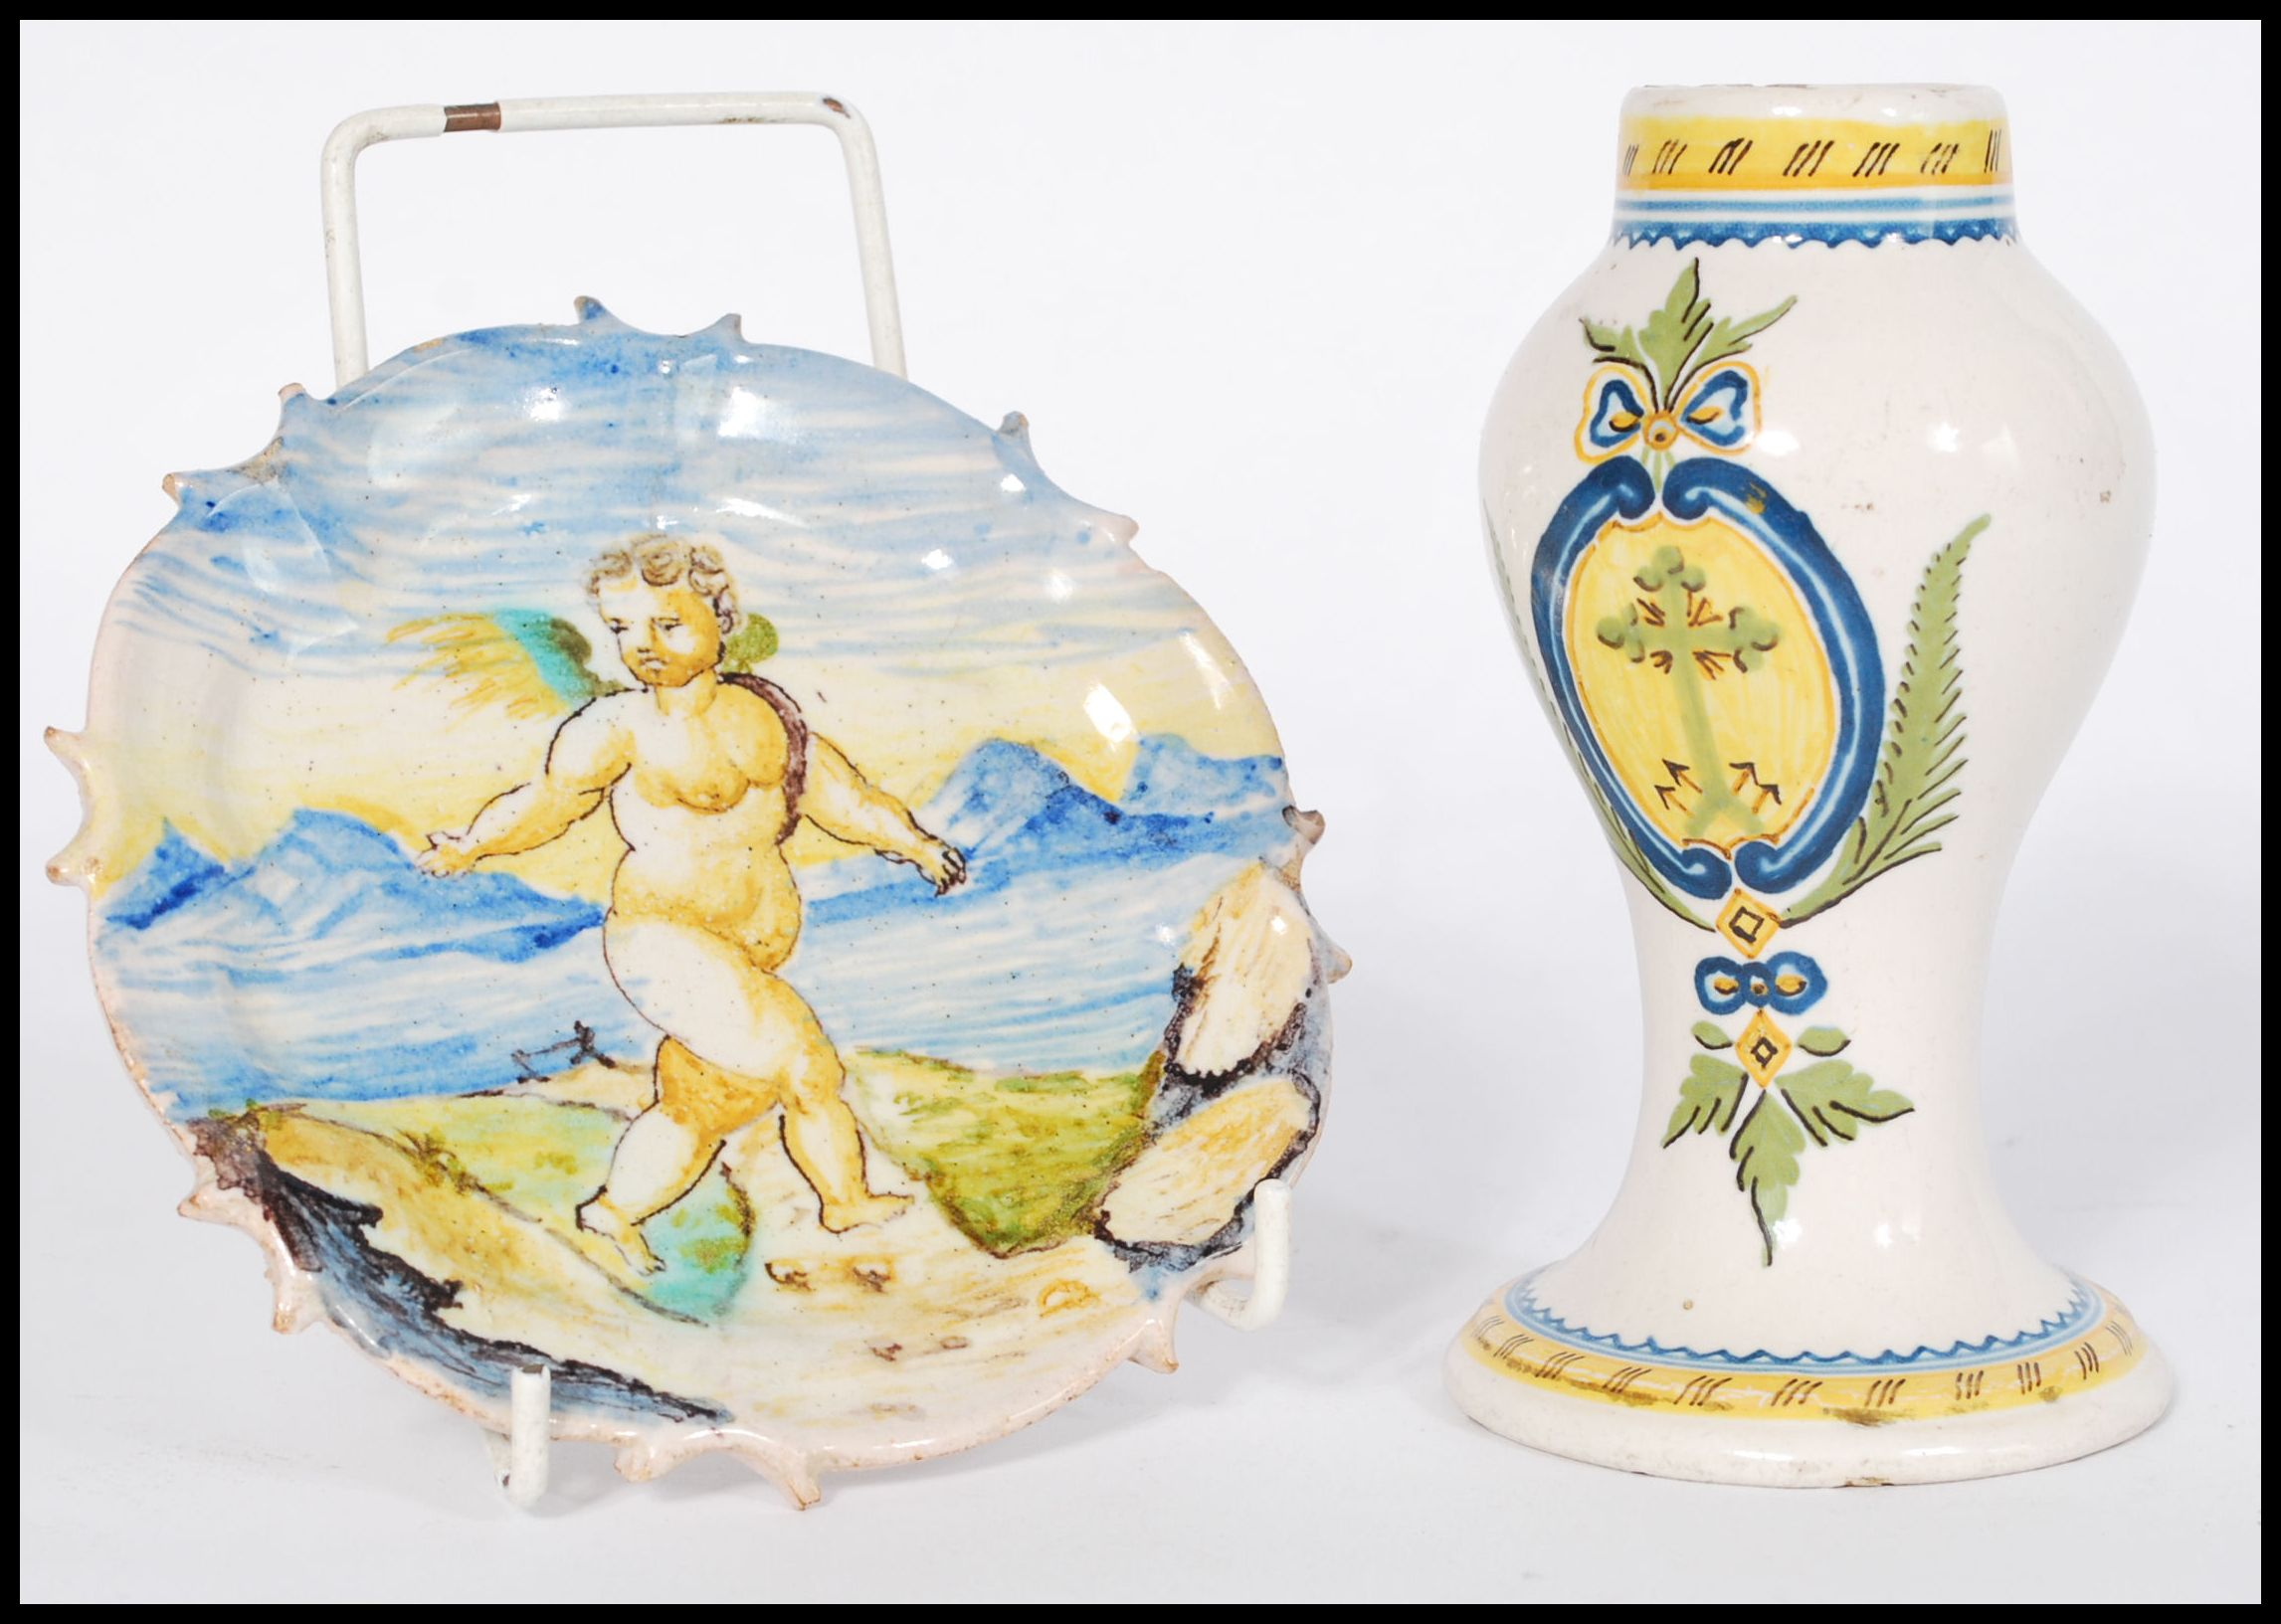 Lot 56 - An early 19th century Italian Faience vase having armorial decoration along with a similar plate